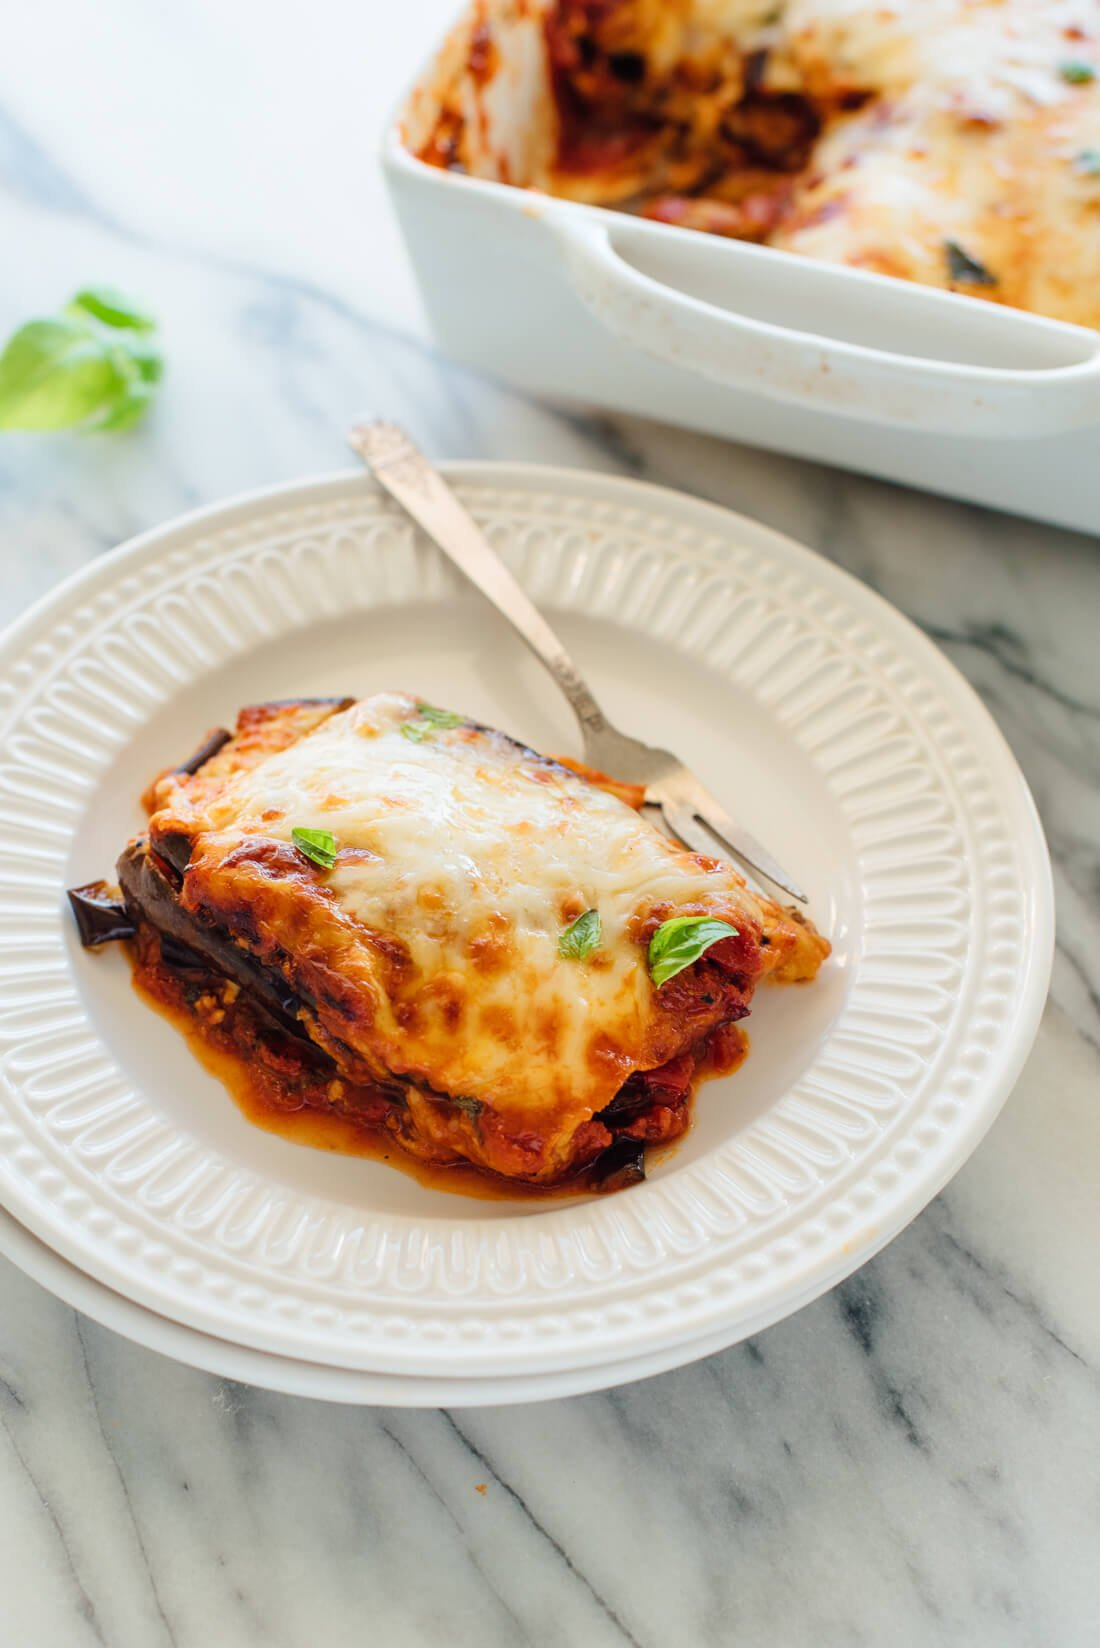 The best eggplant Parmesan recipe, made with baked eggplant and no breading! It's like lightened-up lasagna.